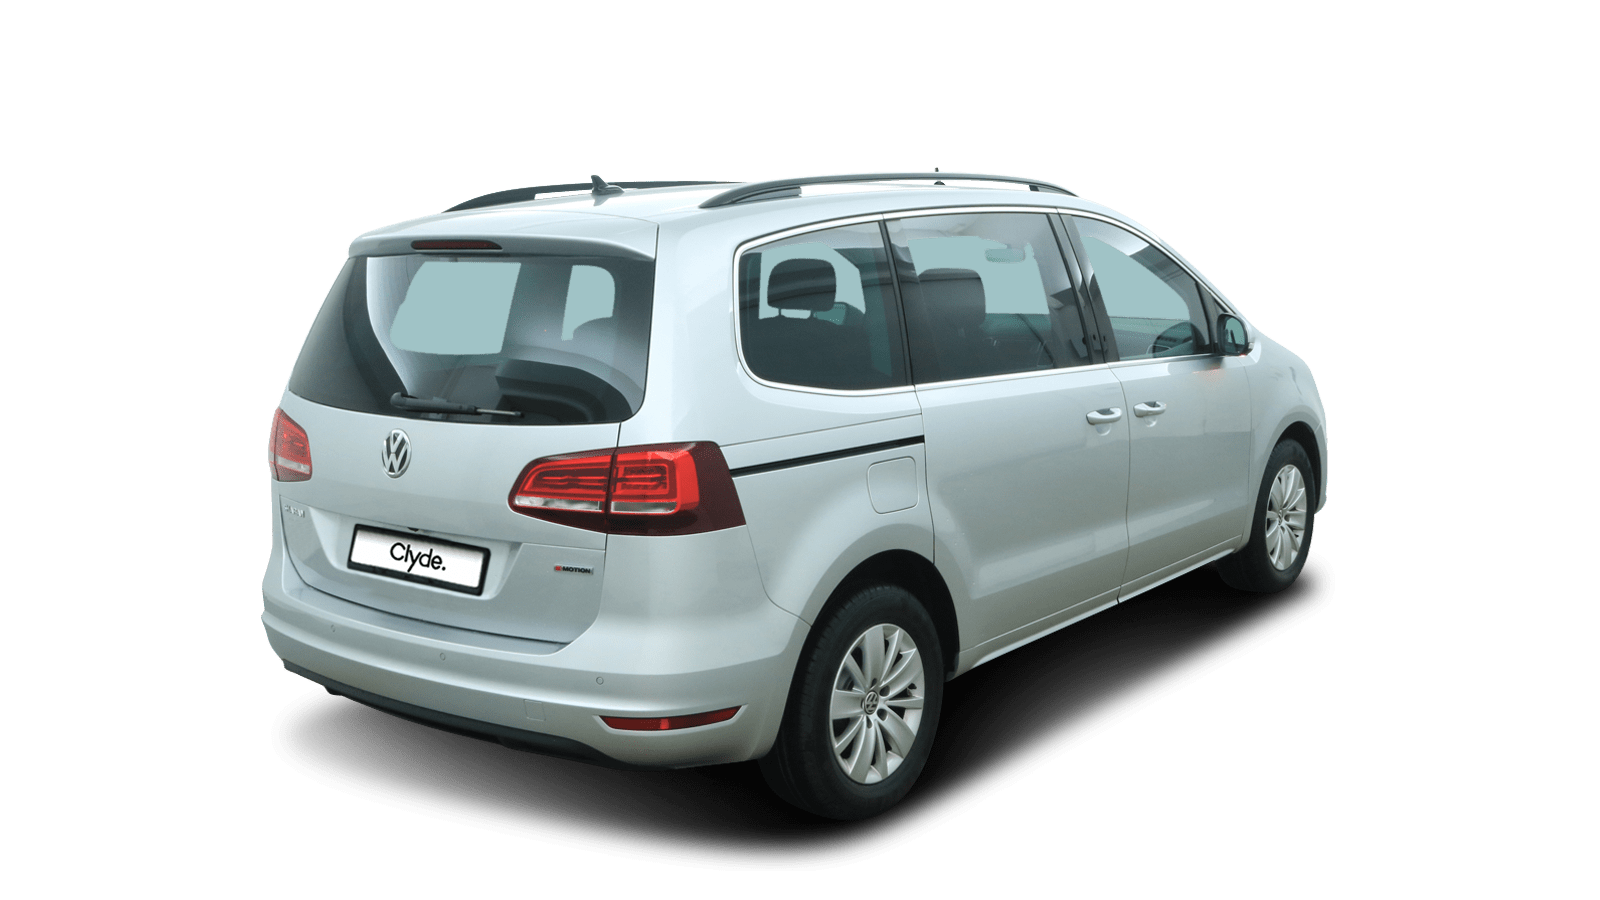 VW Sharan Silver back - Clyde car subscription